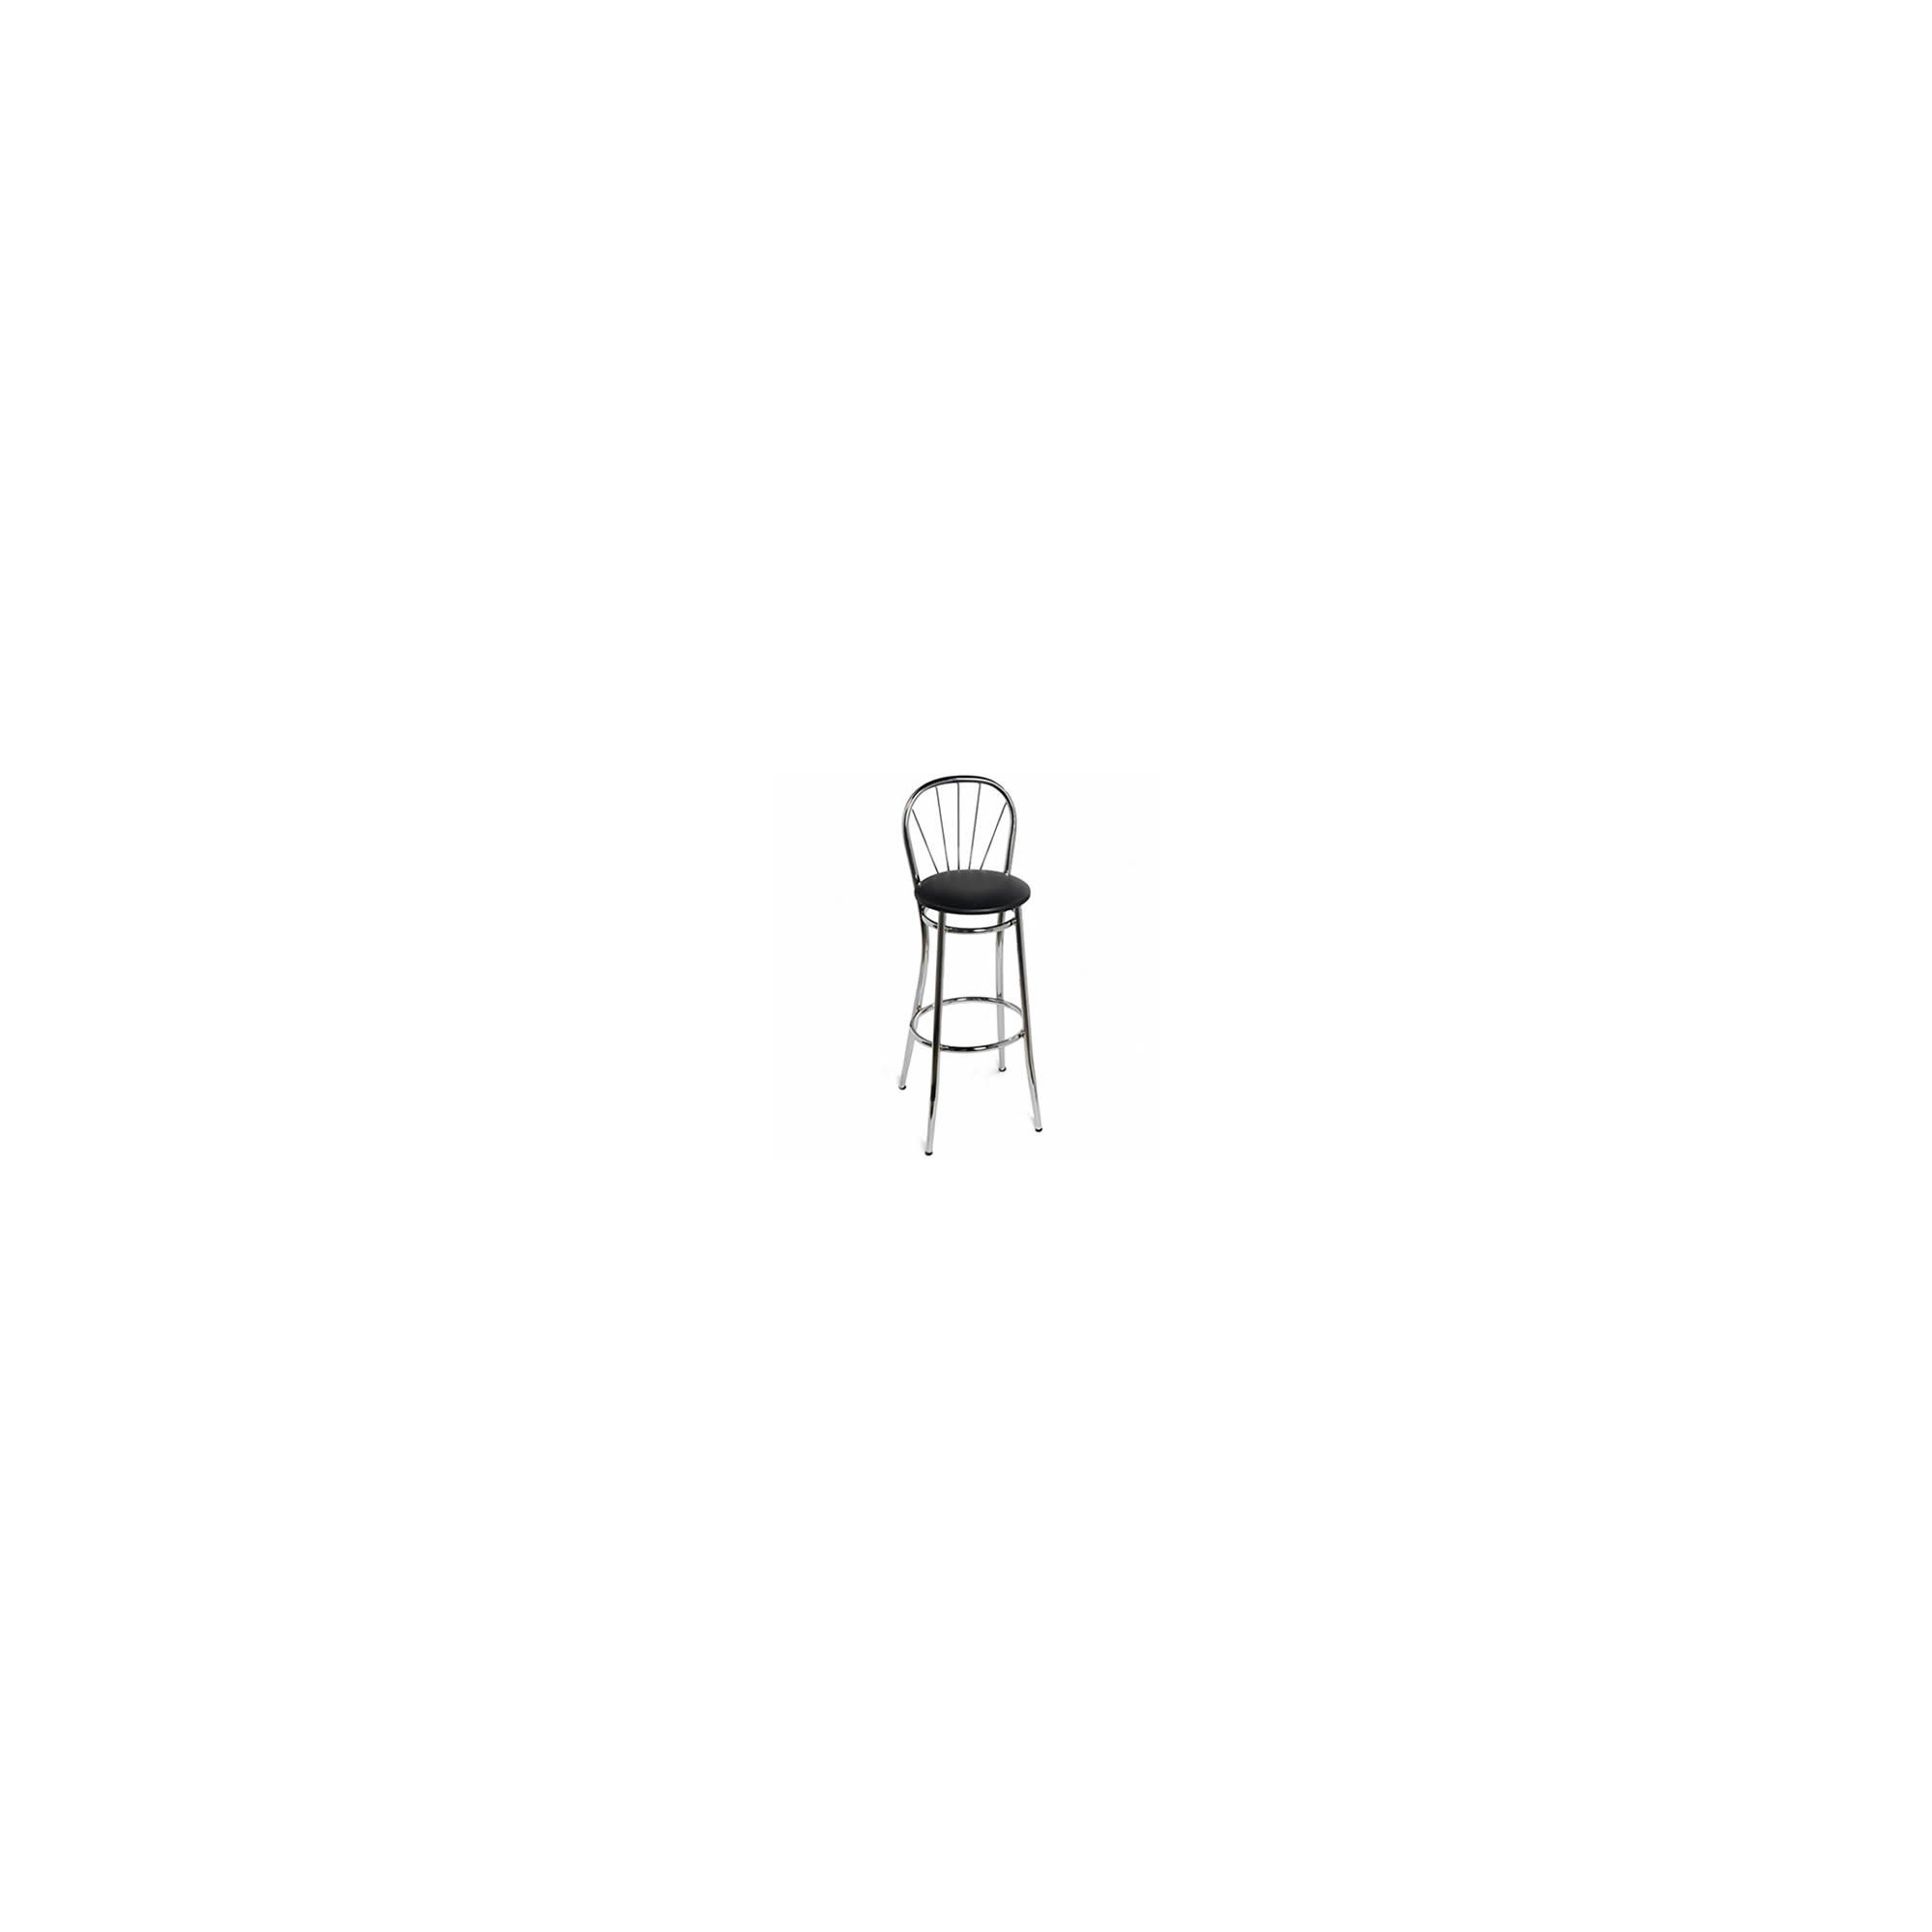 Pro Global Bistrot 65 Kitchen Stool (Pack of 2) at Tescos Direct